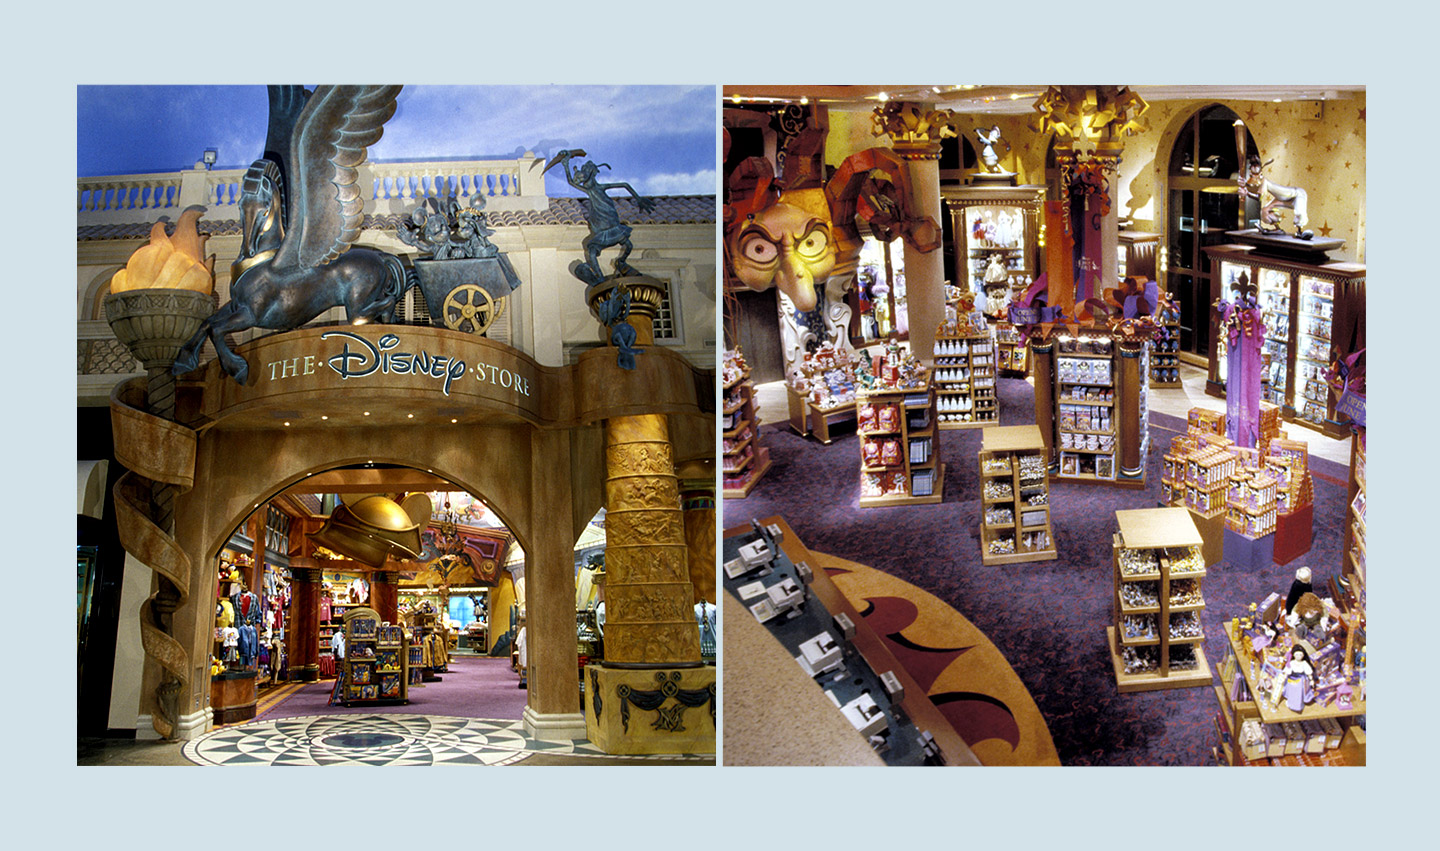 The Disney Store at Caesar's Forum